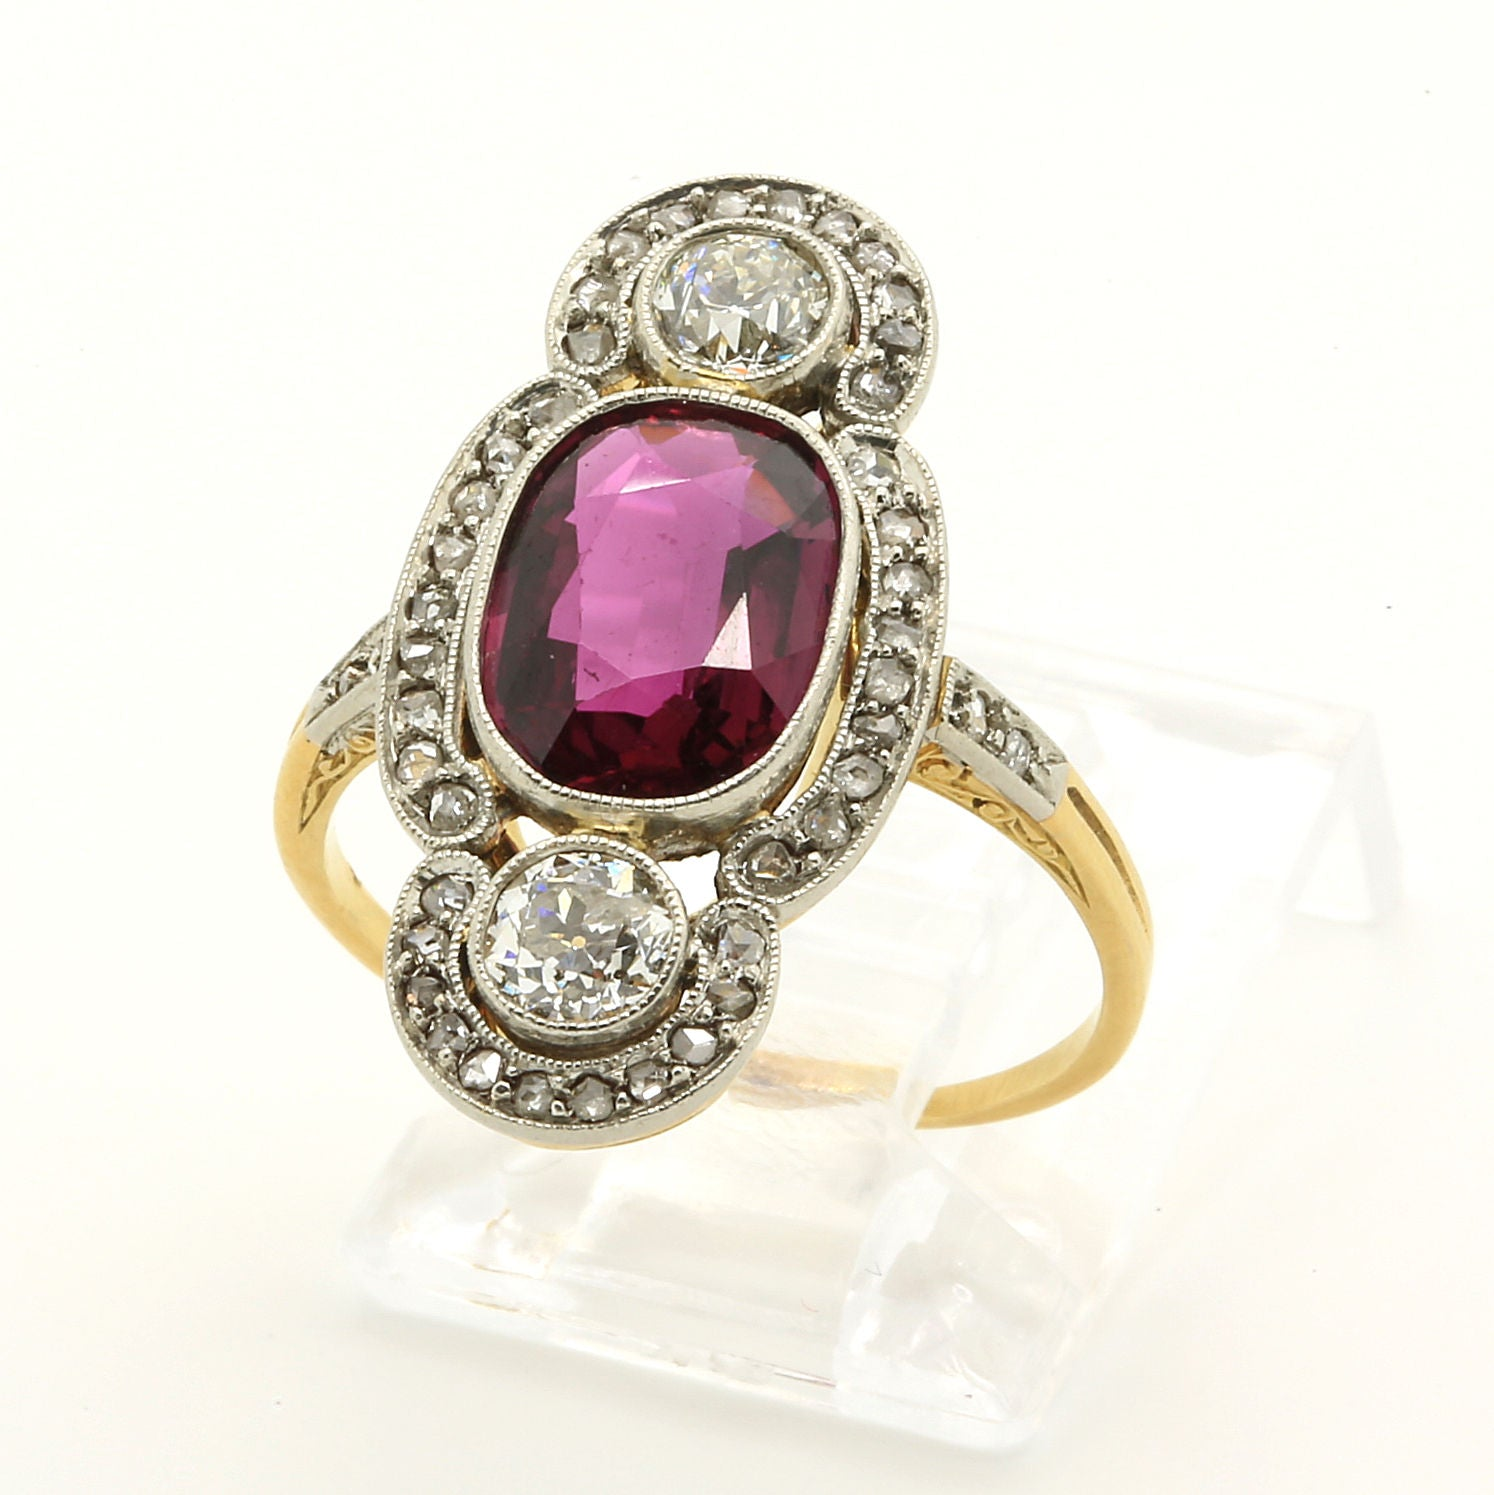 Antique Art Deco Ring in 18k Yellow Gold with 2 carat Ruby & Diamonds - Terrafinejewelry